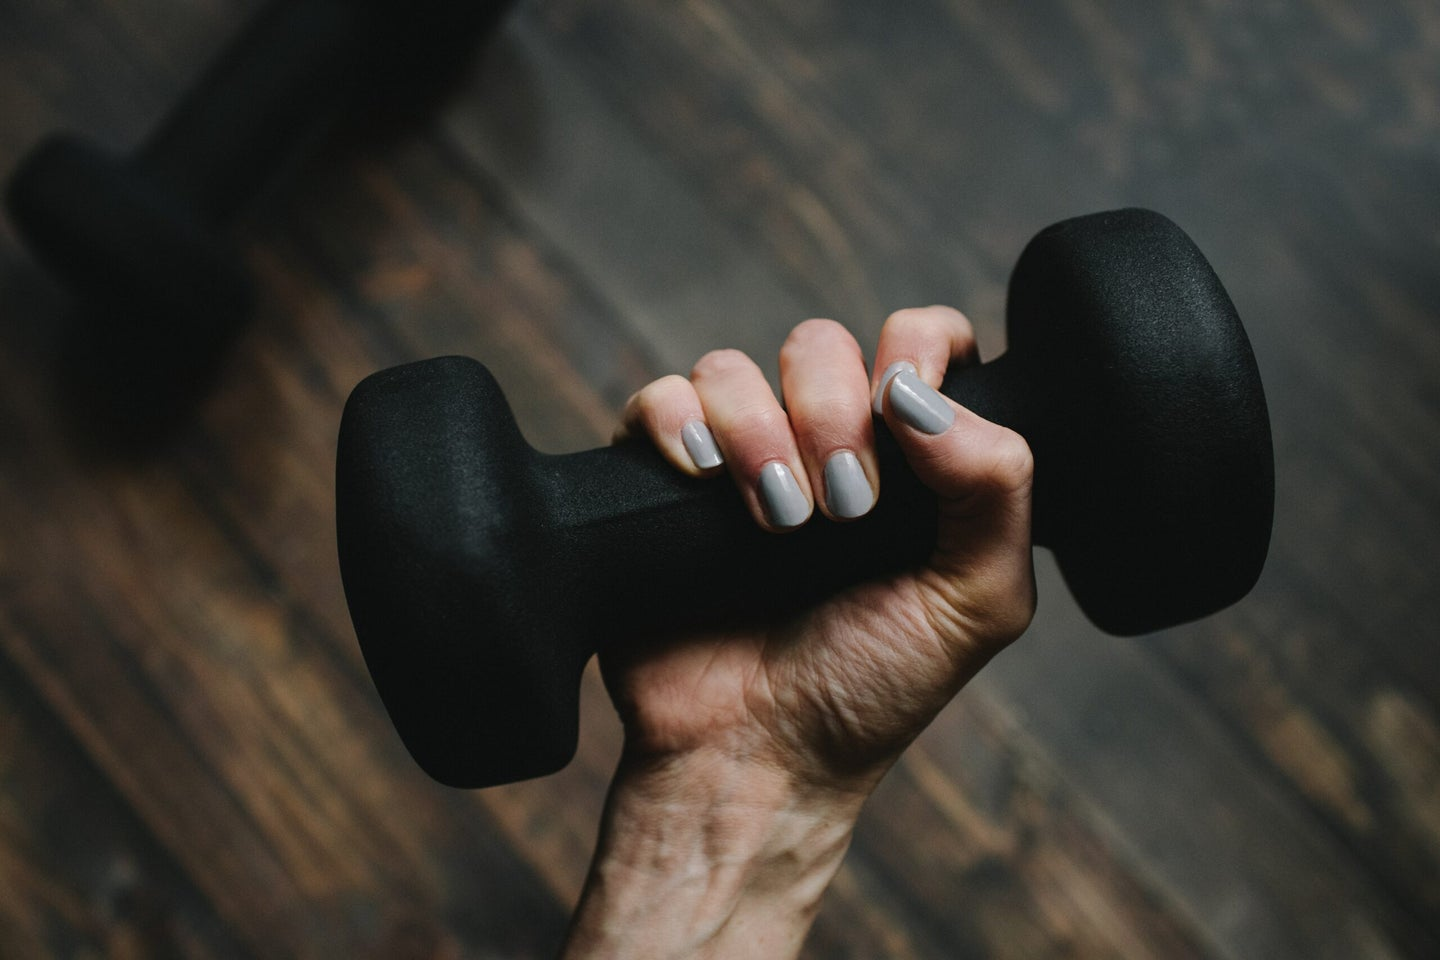 A manicured hand holding a dumbbell